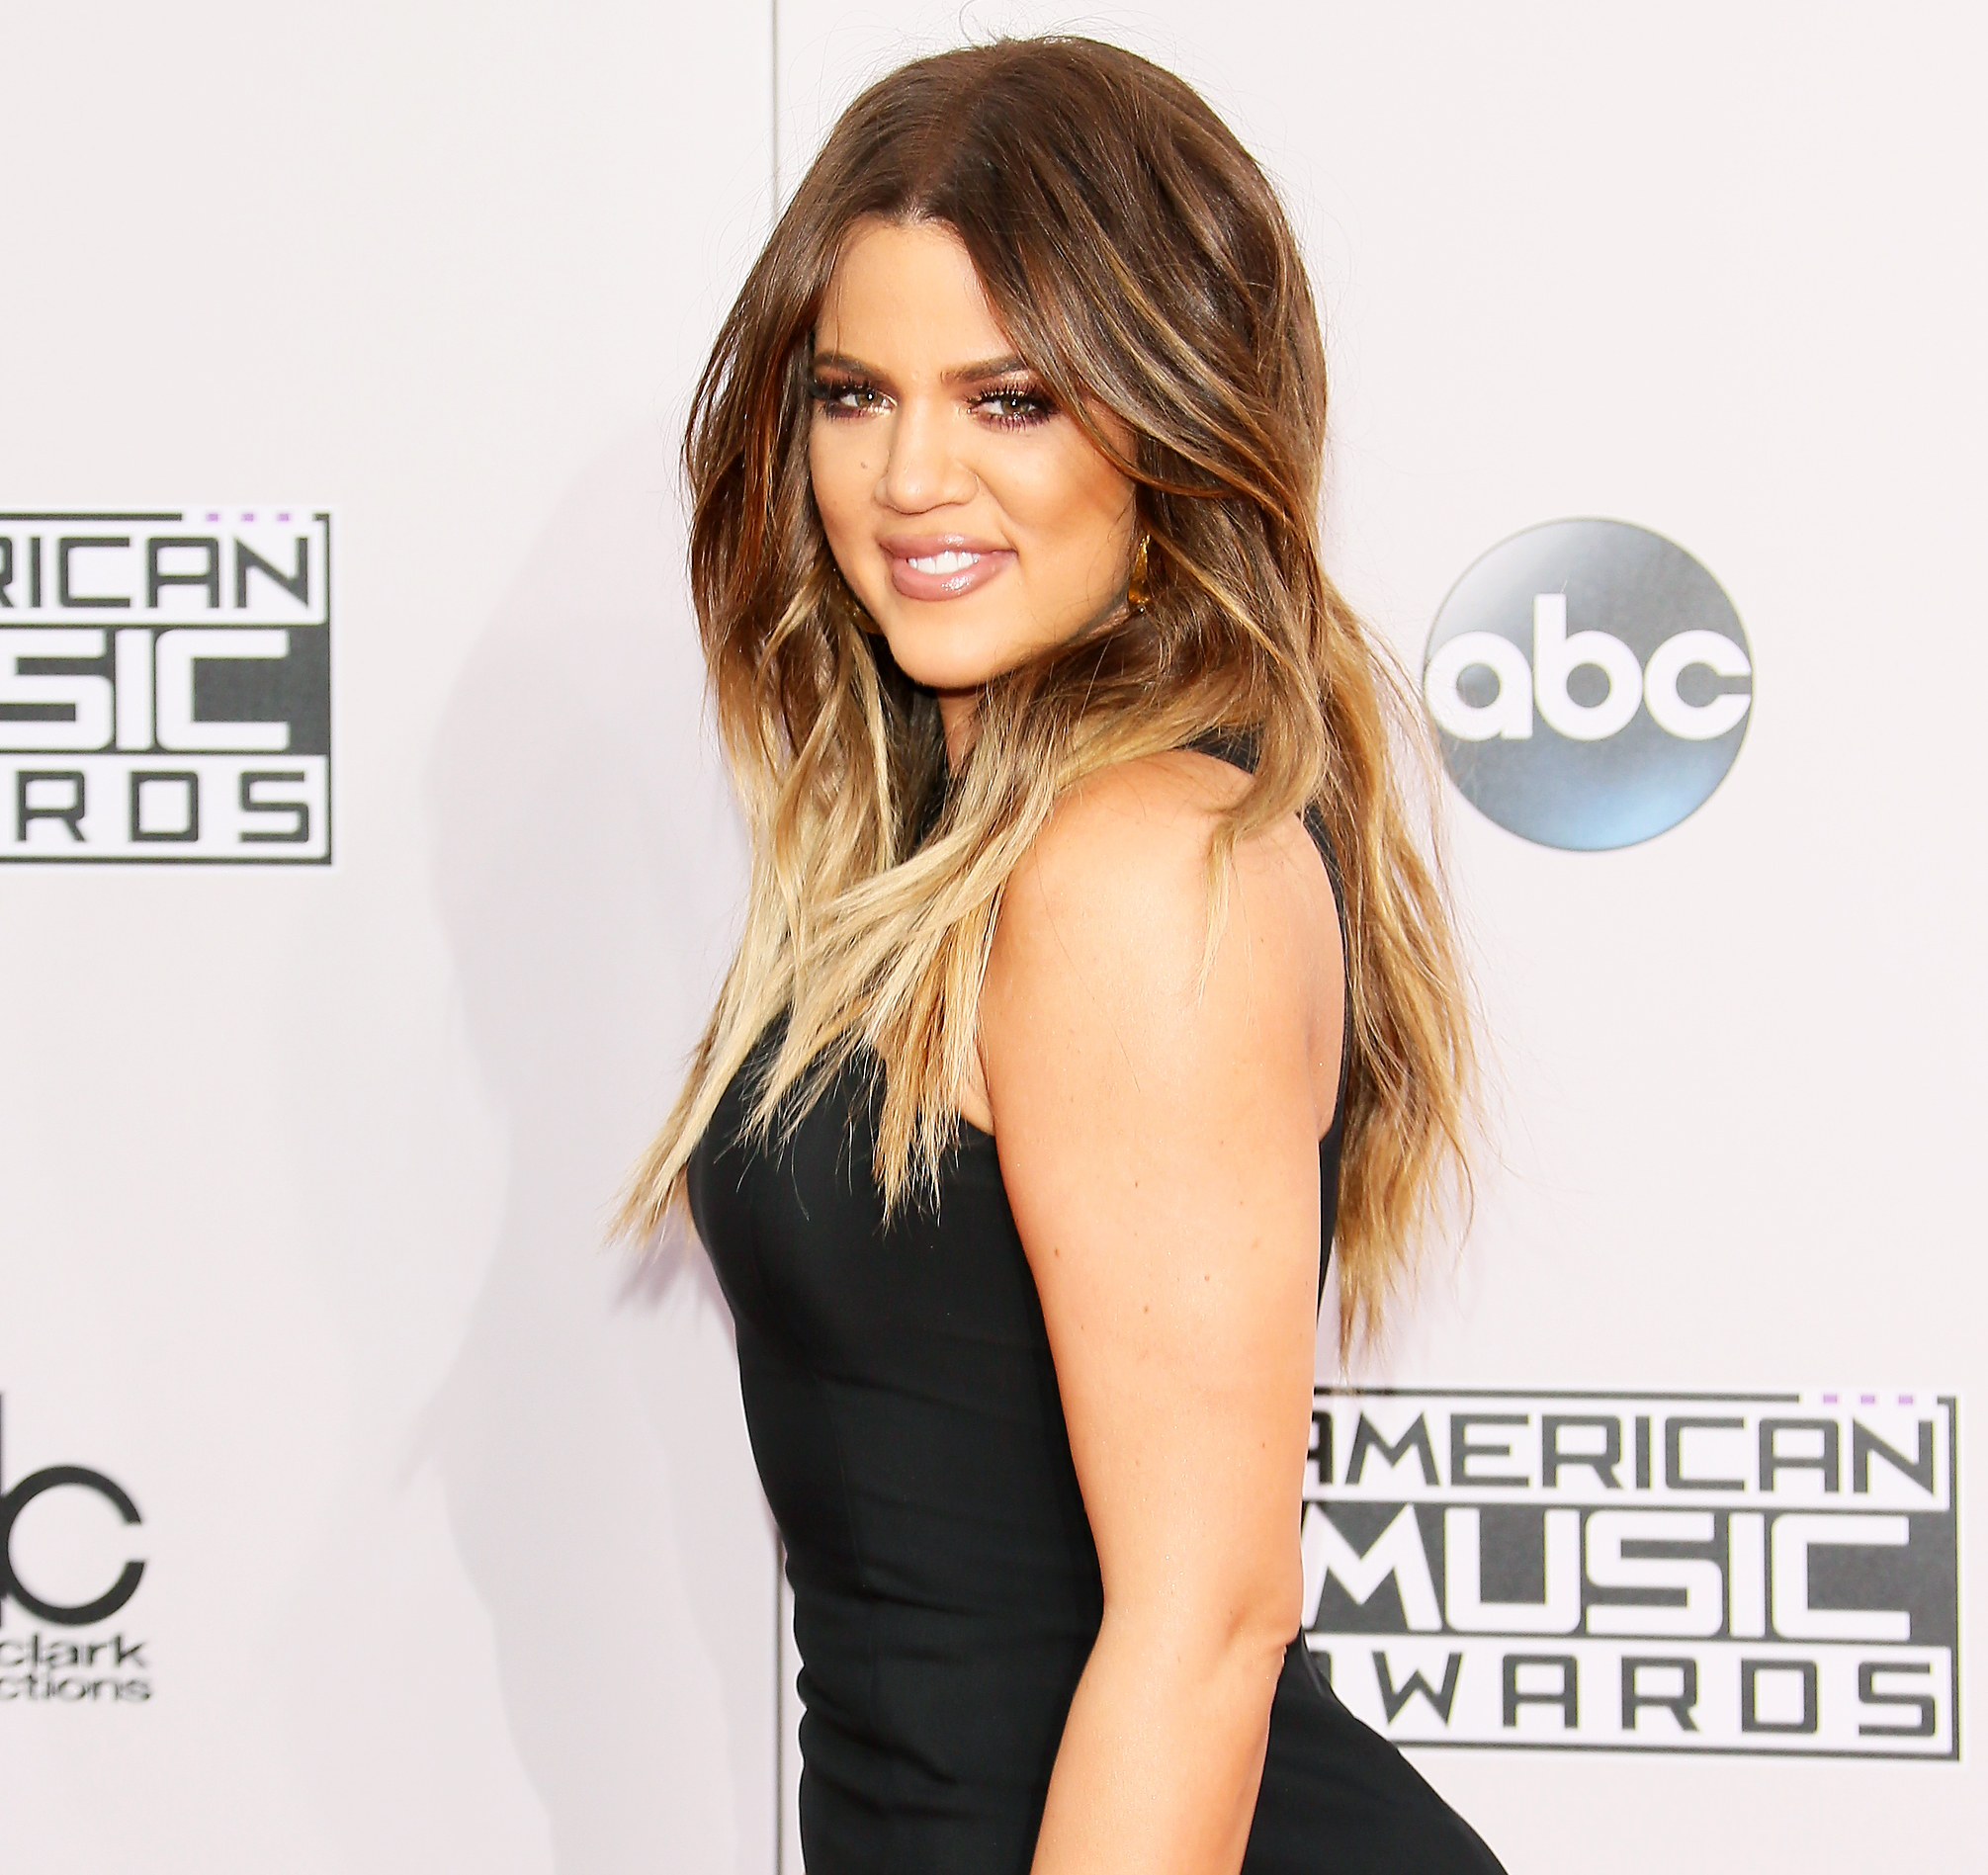 See The Latest News Photos And Videos About Khloe Kardashian On ZIG